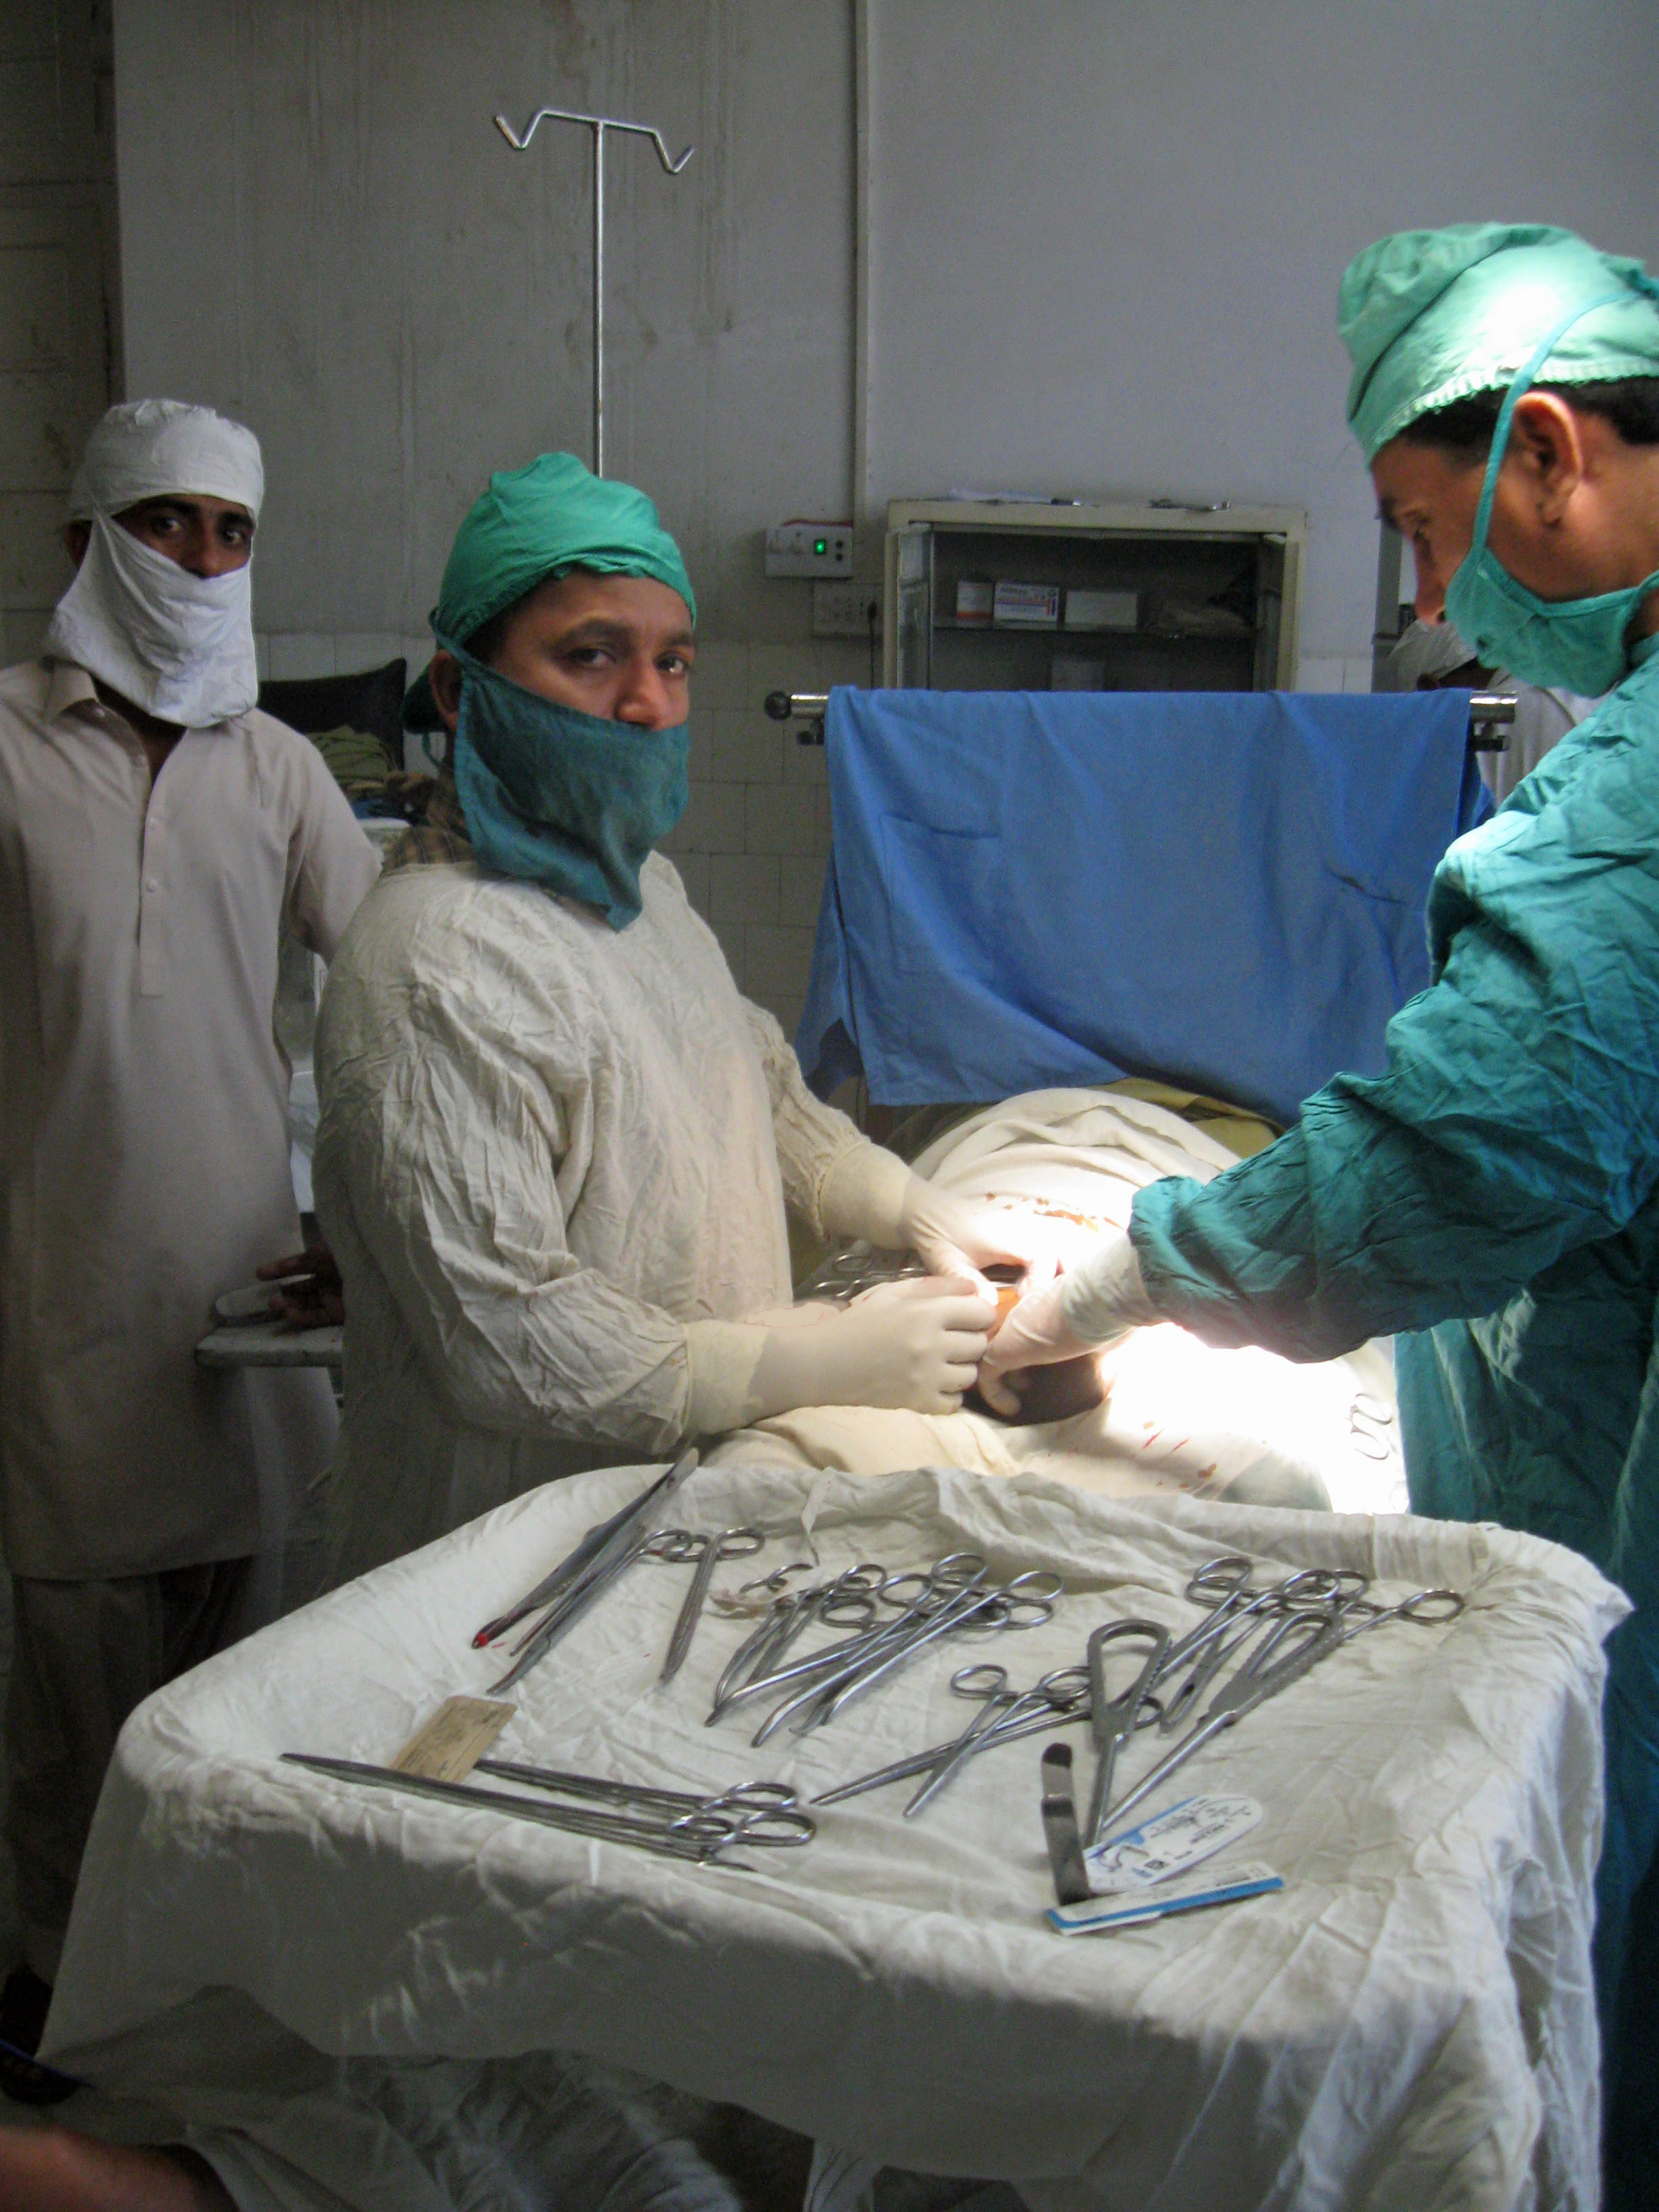 20100313_Sldo_Meda_Aqureshi_Aqureshi_Sind_Shp_Shp_Operated_In_Hospital_22